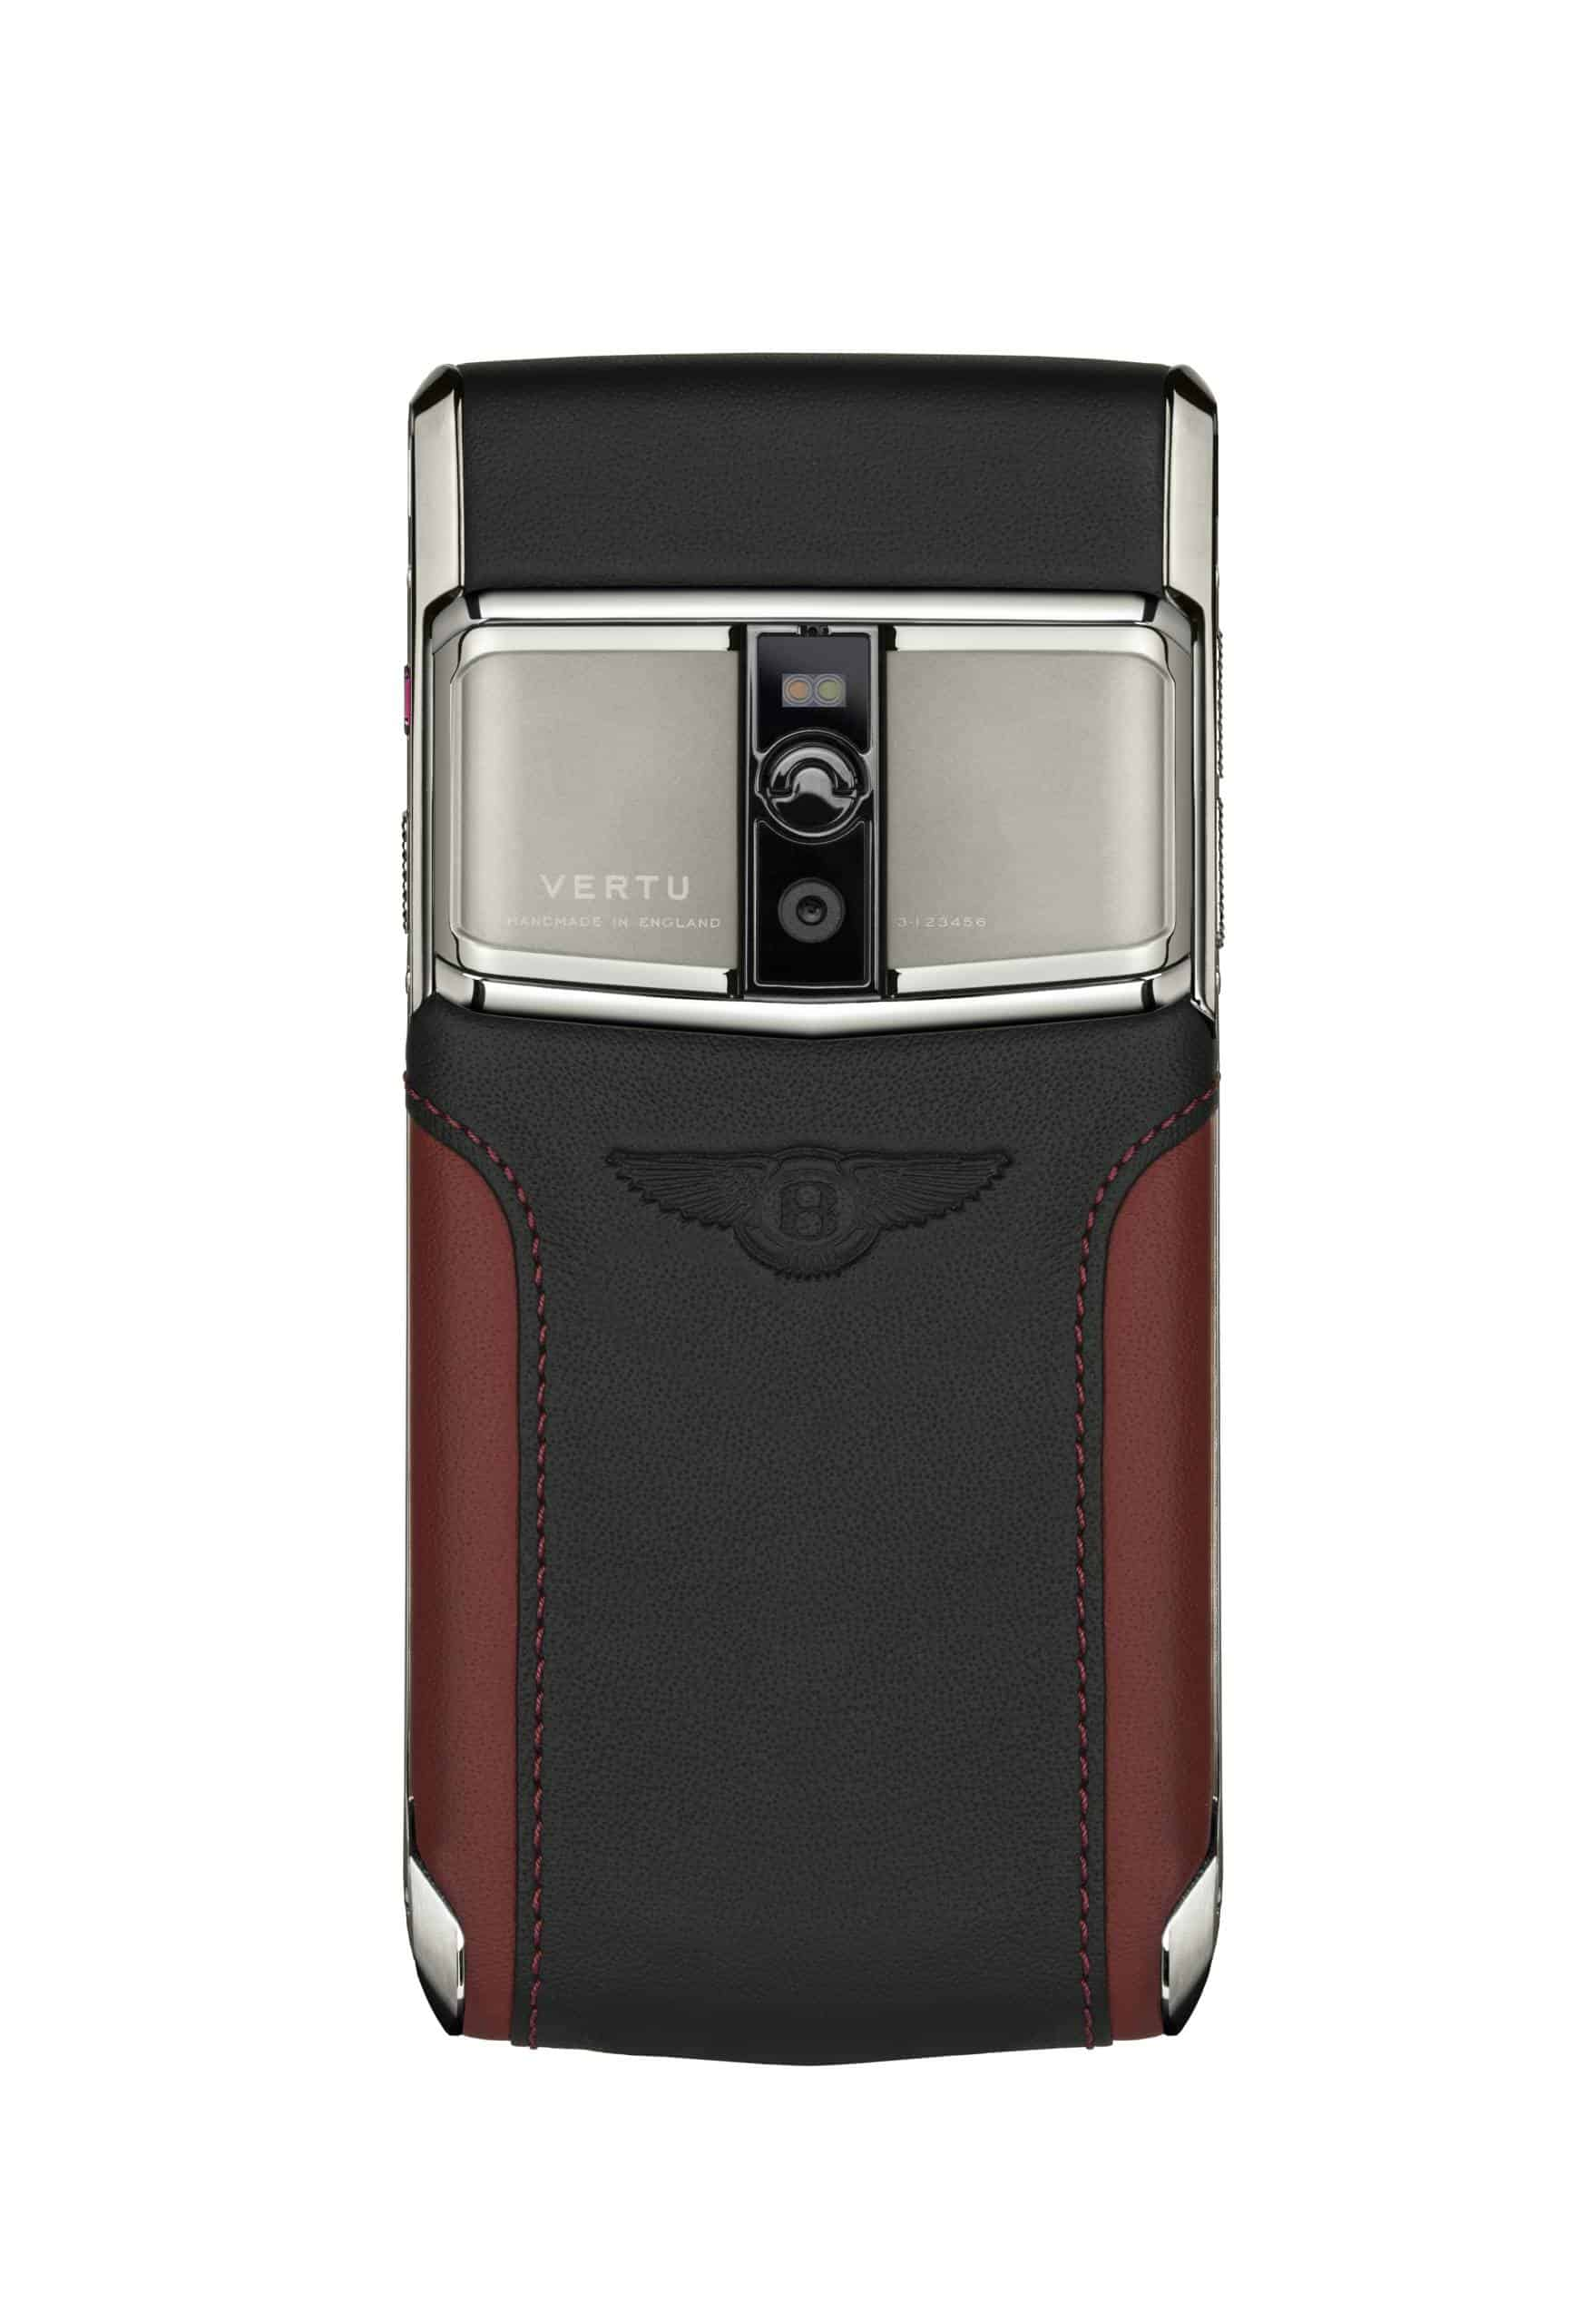 New Signature Touch for Bentley phone launched 11